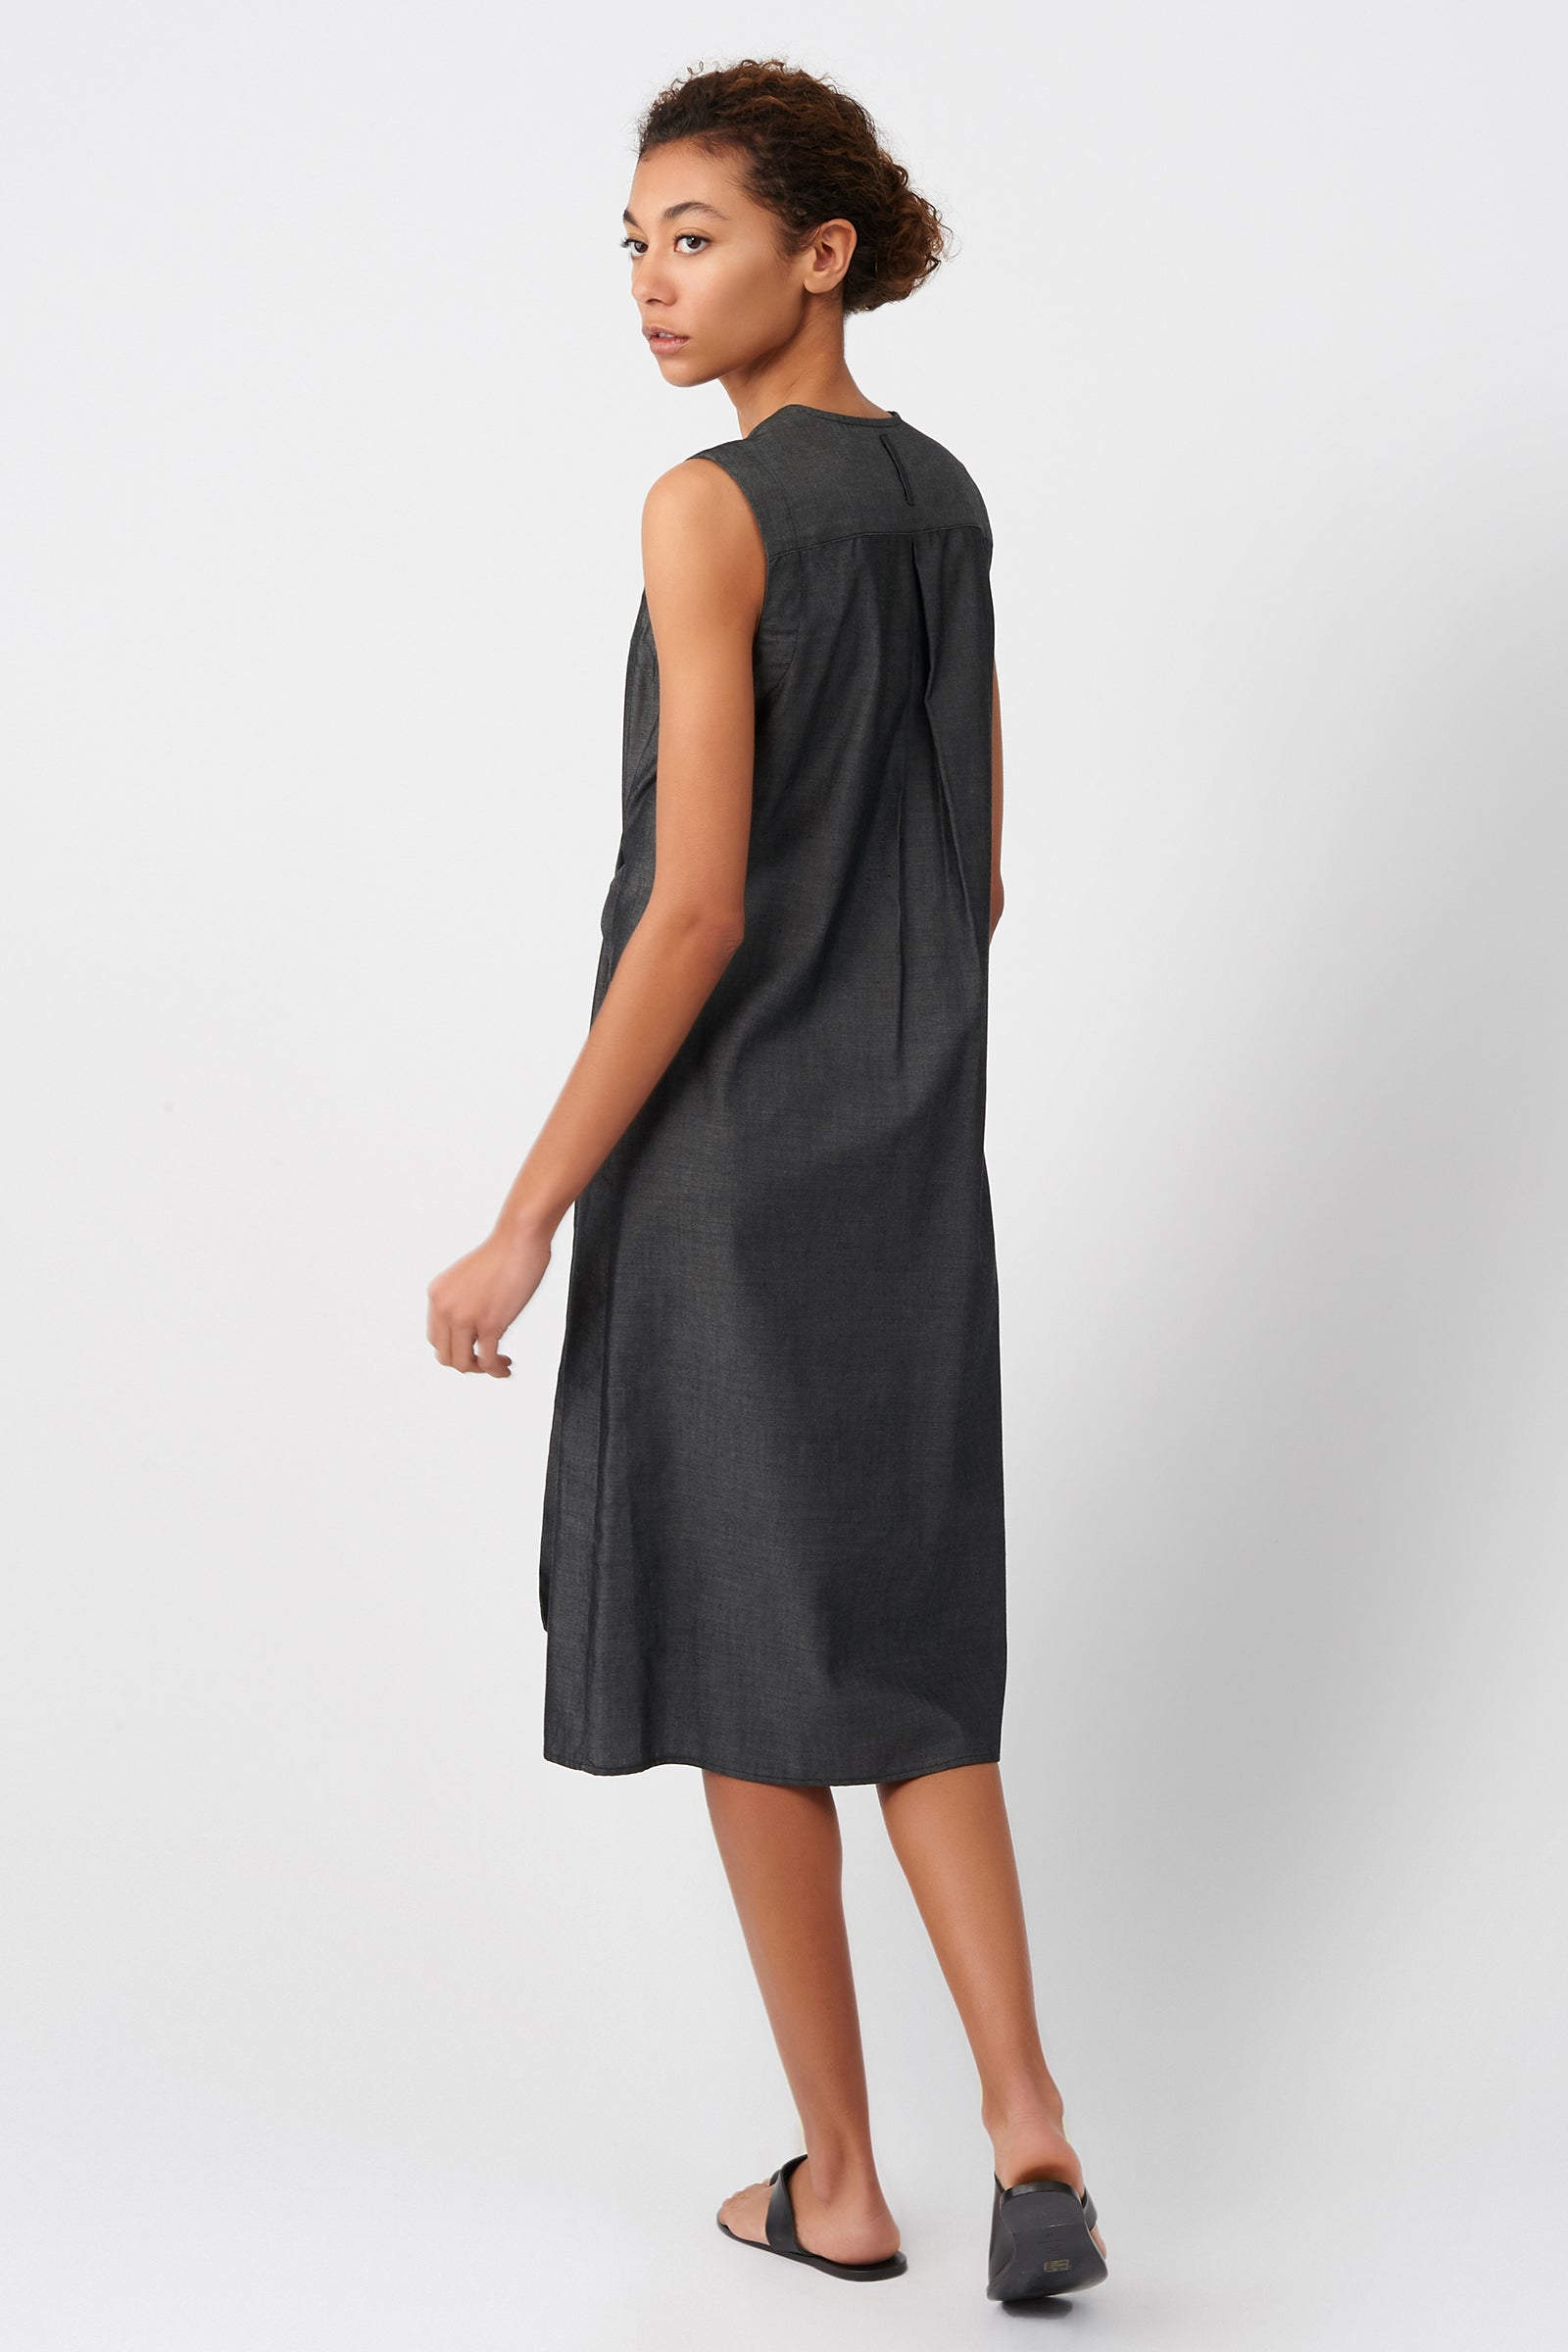 Kal Rieman Tie Waist Dress in Denim on Model Side View